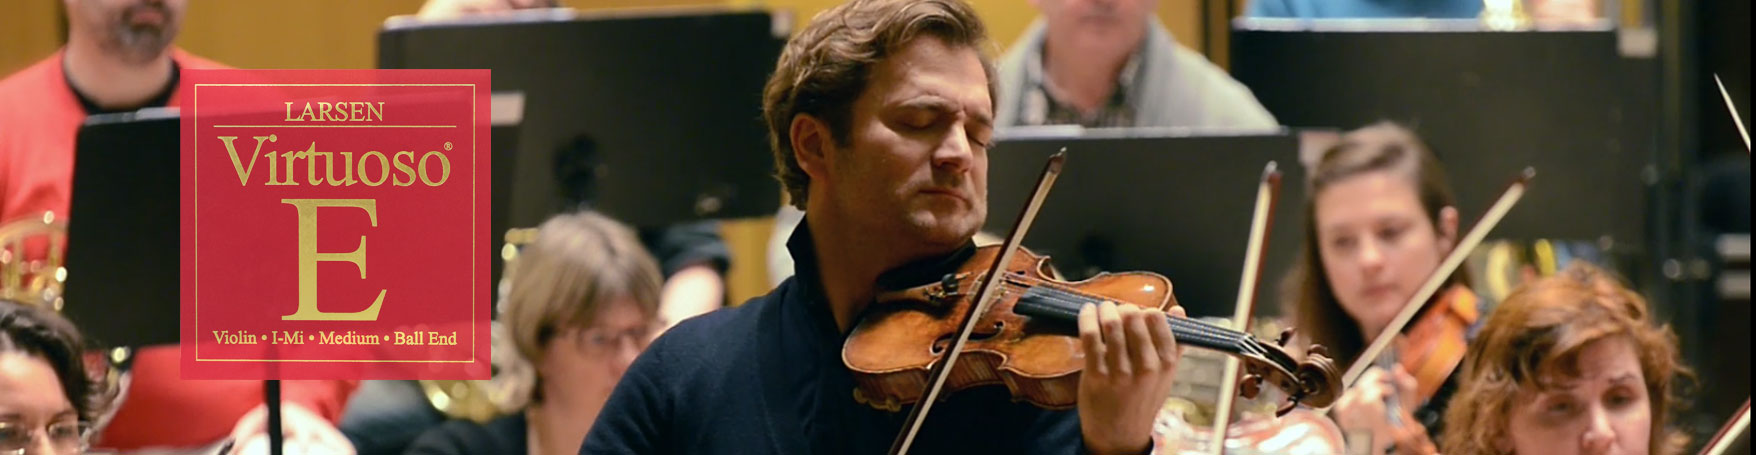 Renaud Capucon violinist visting Larsen Strings in Denmark